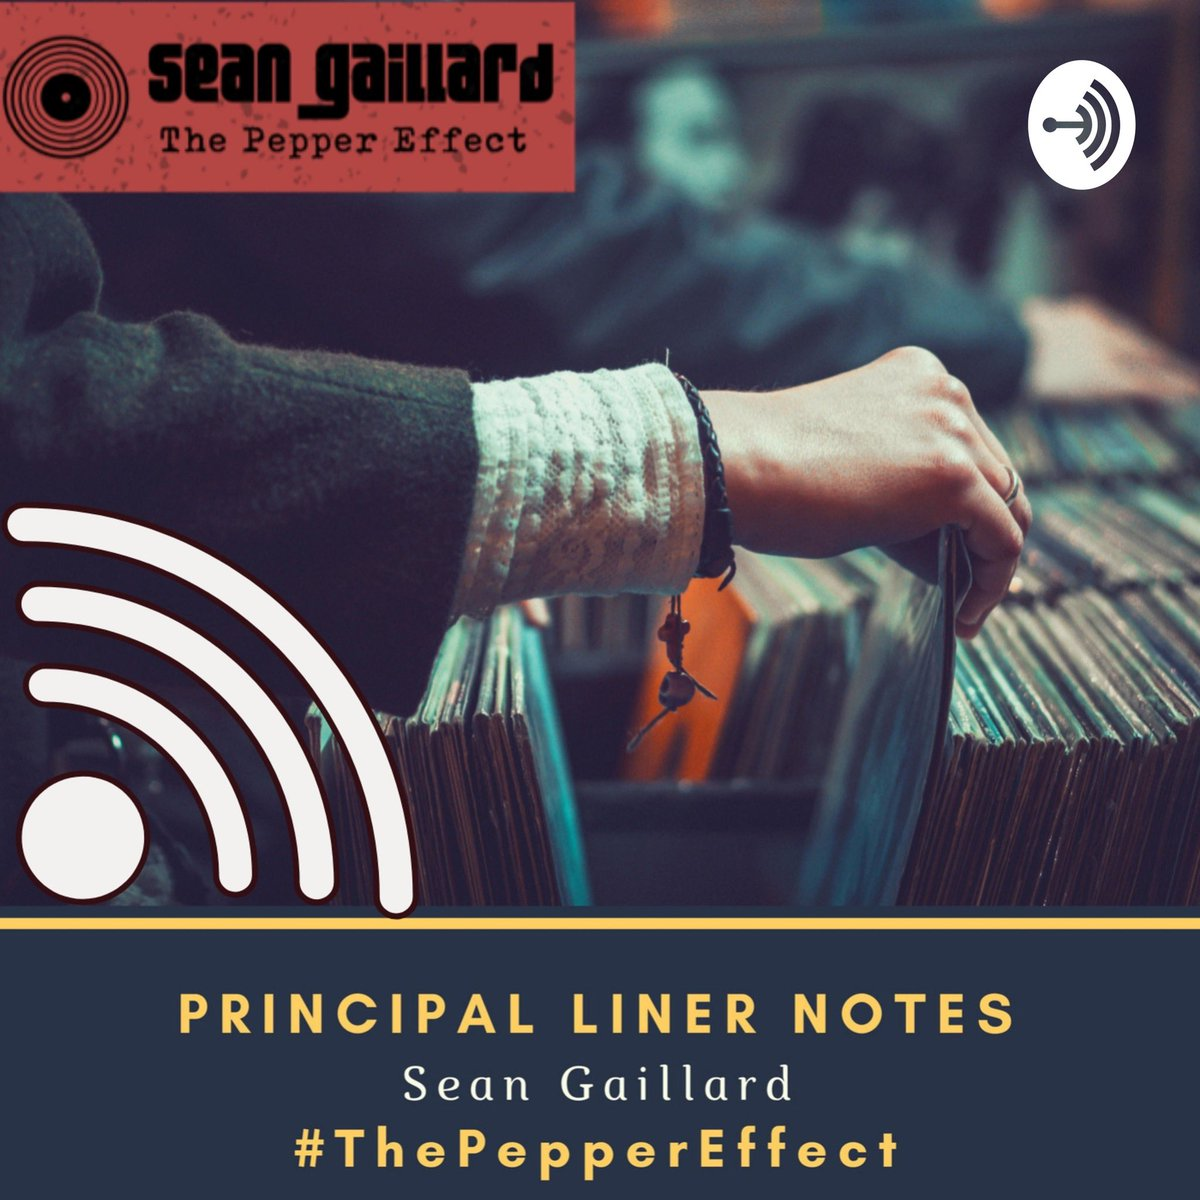 """{New} Episode of """"The Principal Liner Notes Podcast"""" is ready for you to download and listen.  Episode 25: """"Teaching Grace""""  https:// anchor.fm/sean-gaillard/ episodes/Teaching-Grace-e5chb2  …    #ThePepperEffect #TrendThePositive <br>http://pic.twitter.com/A6VGB1CZRq"""